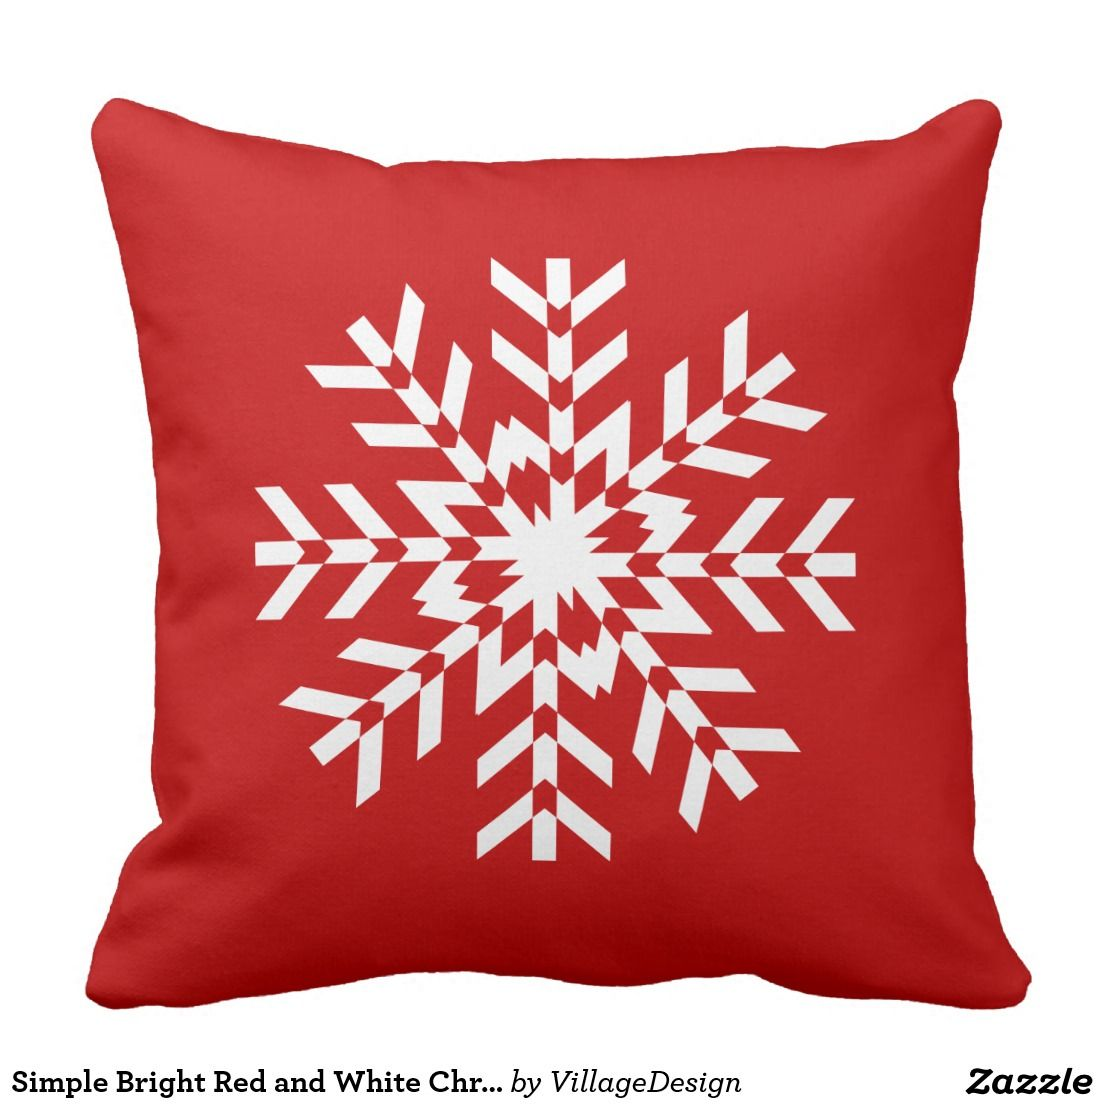 Simple Bright Red and White Christmas Snowflake Outdoor Pillow ...